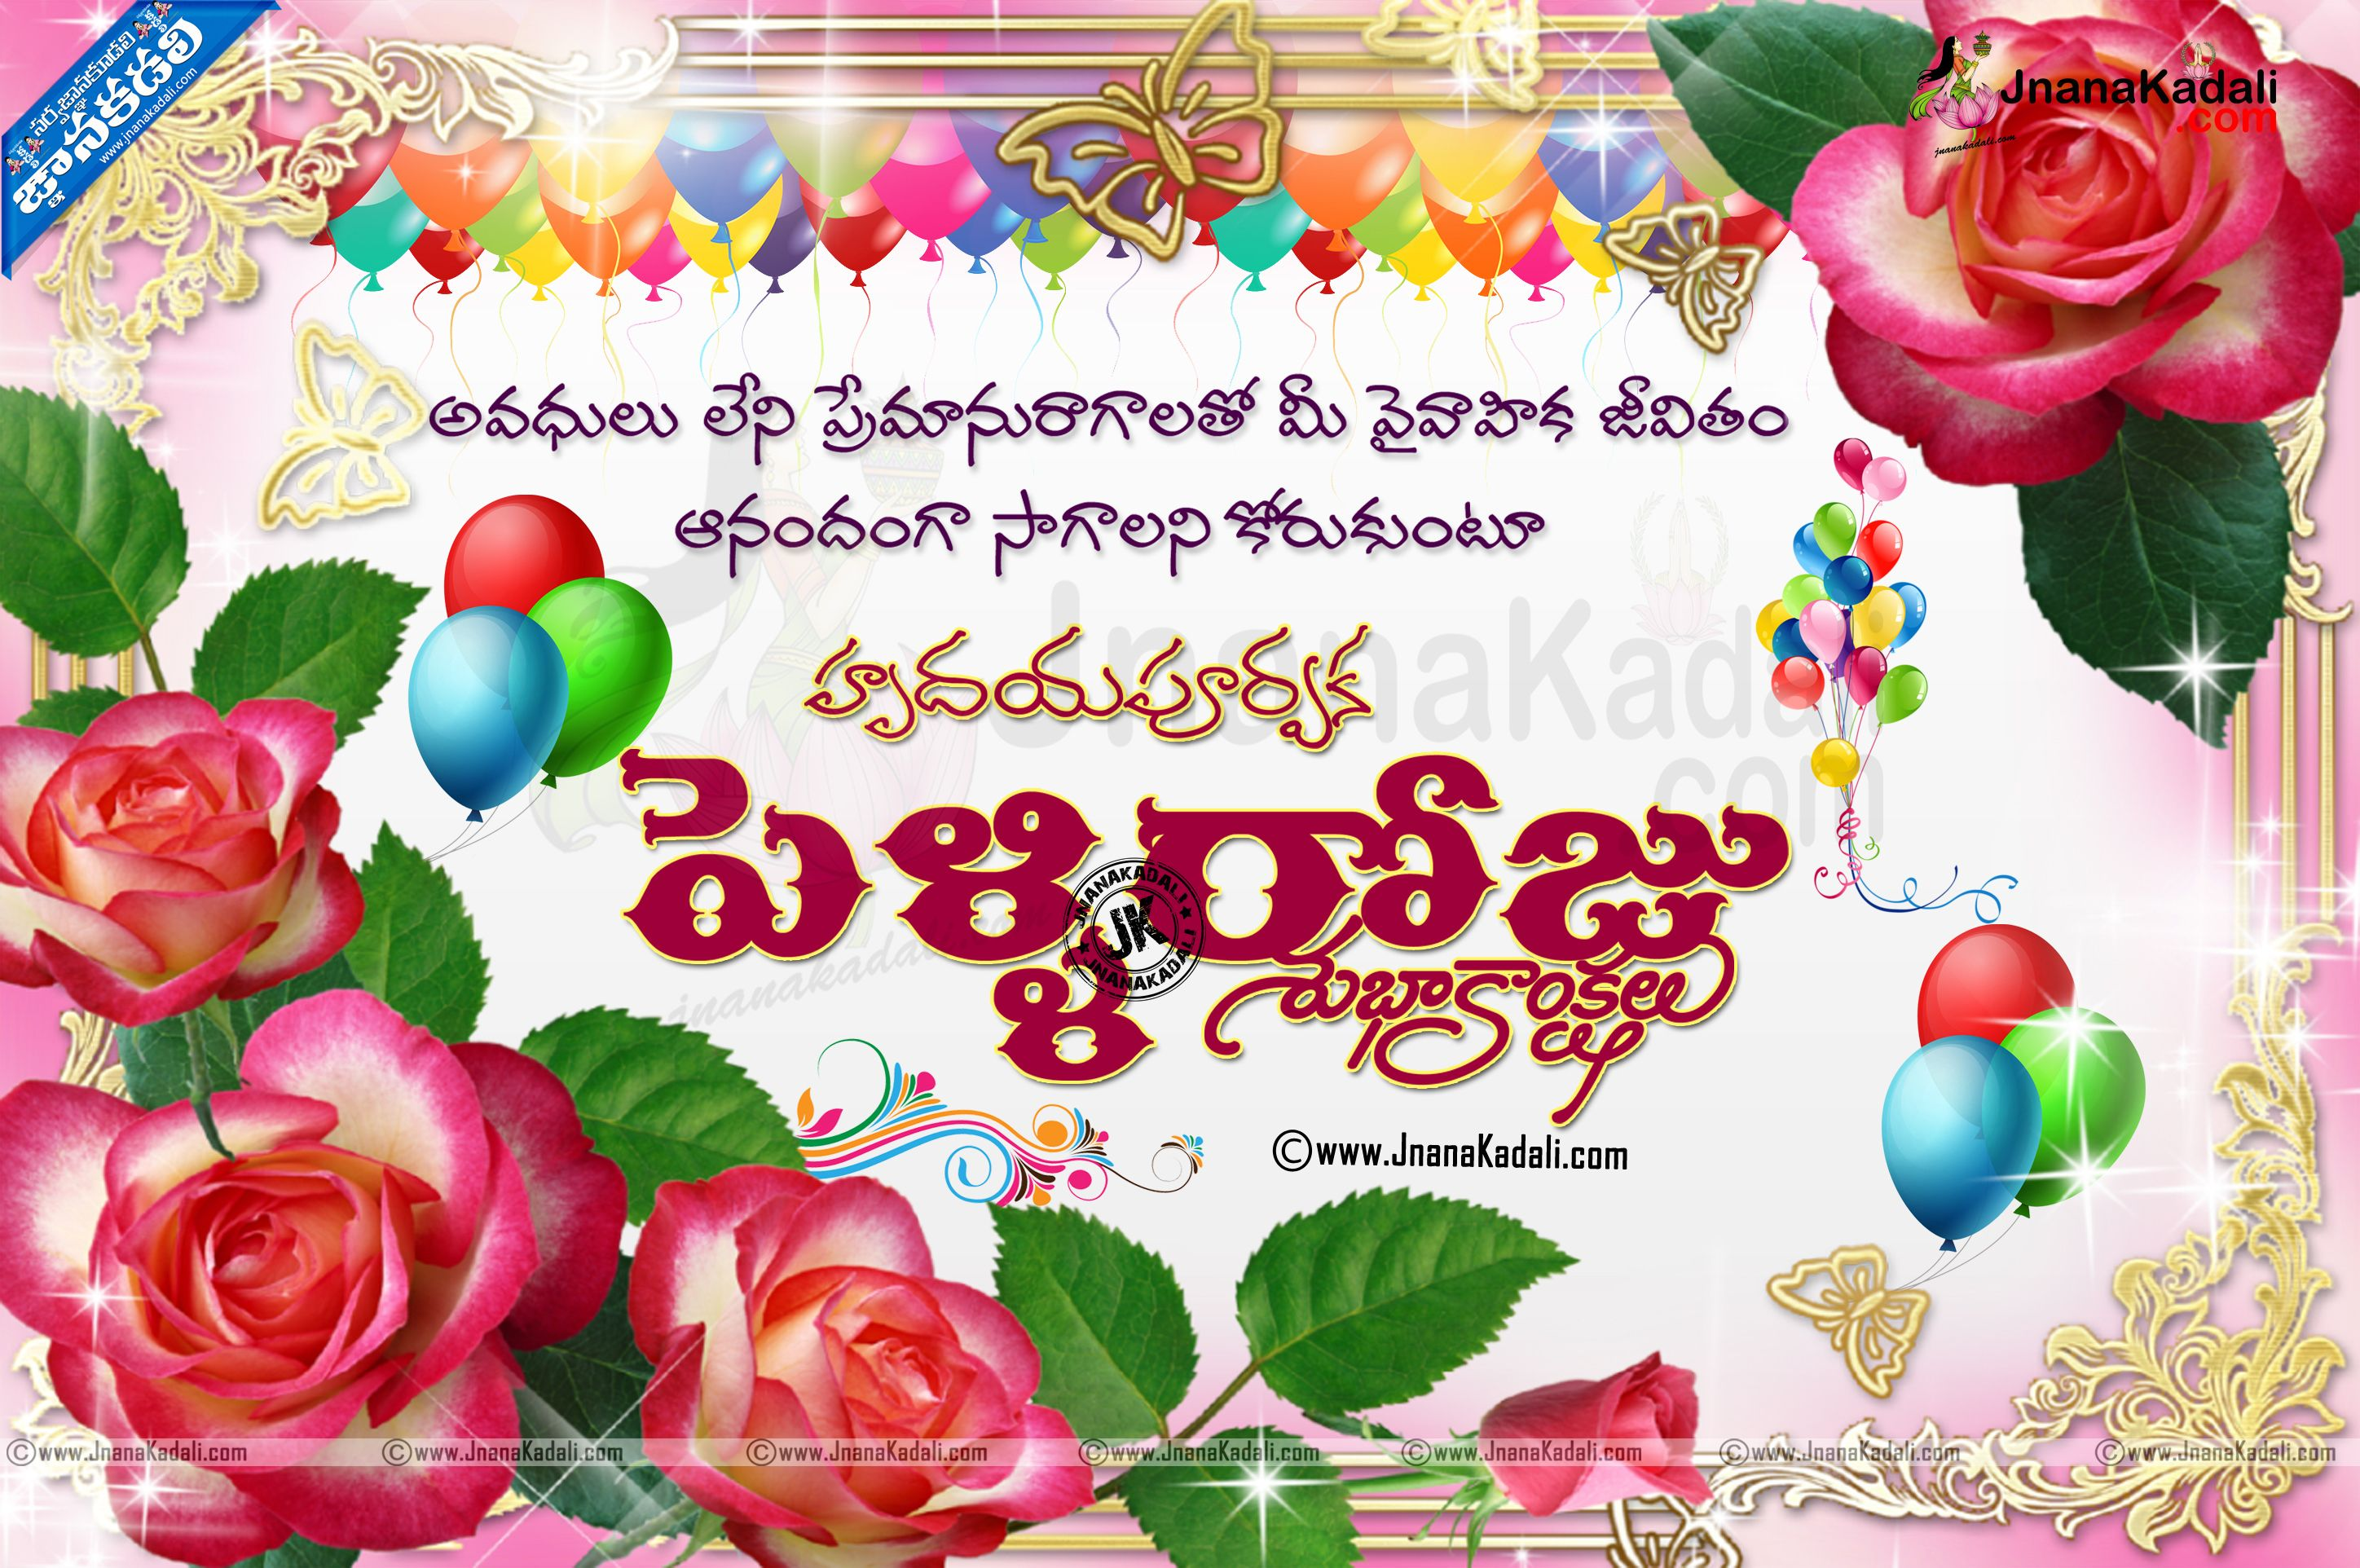 Marriage day wishes hd wallpapers Best Telugu Marriages